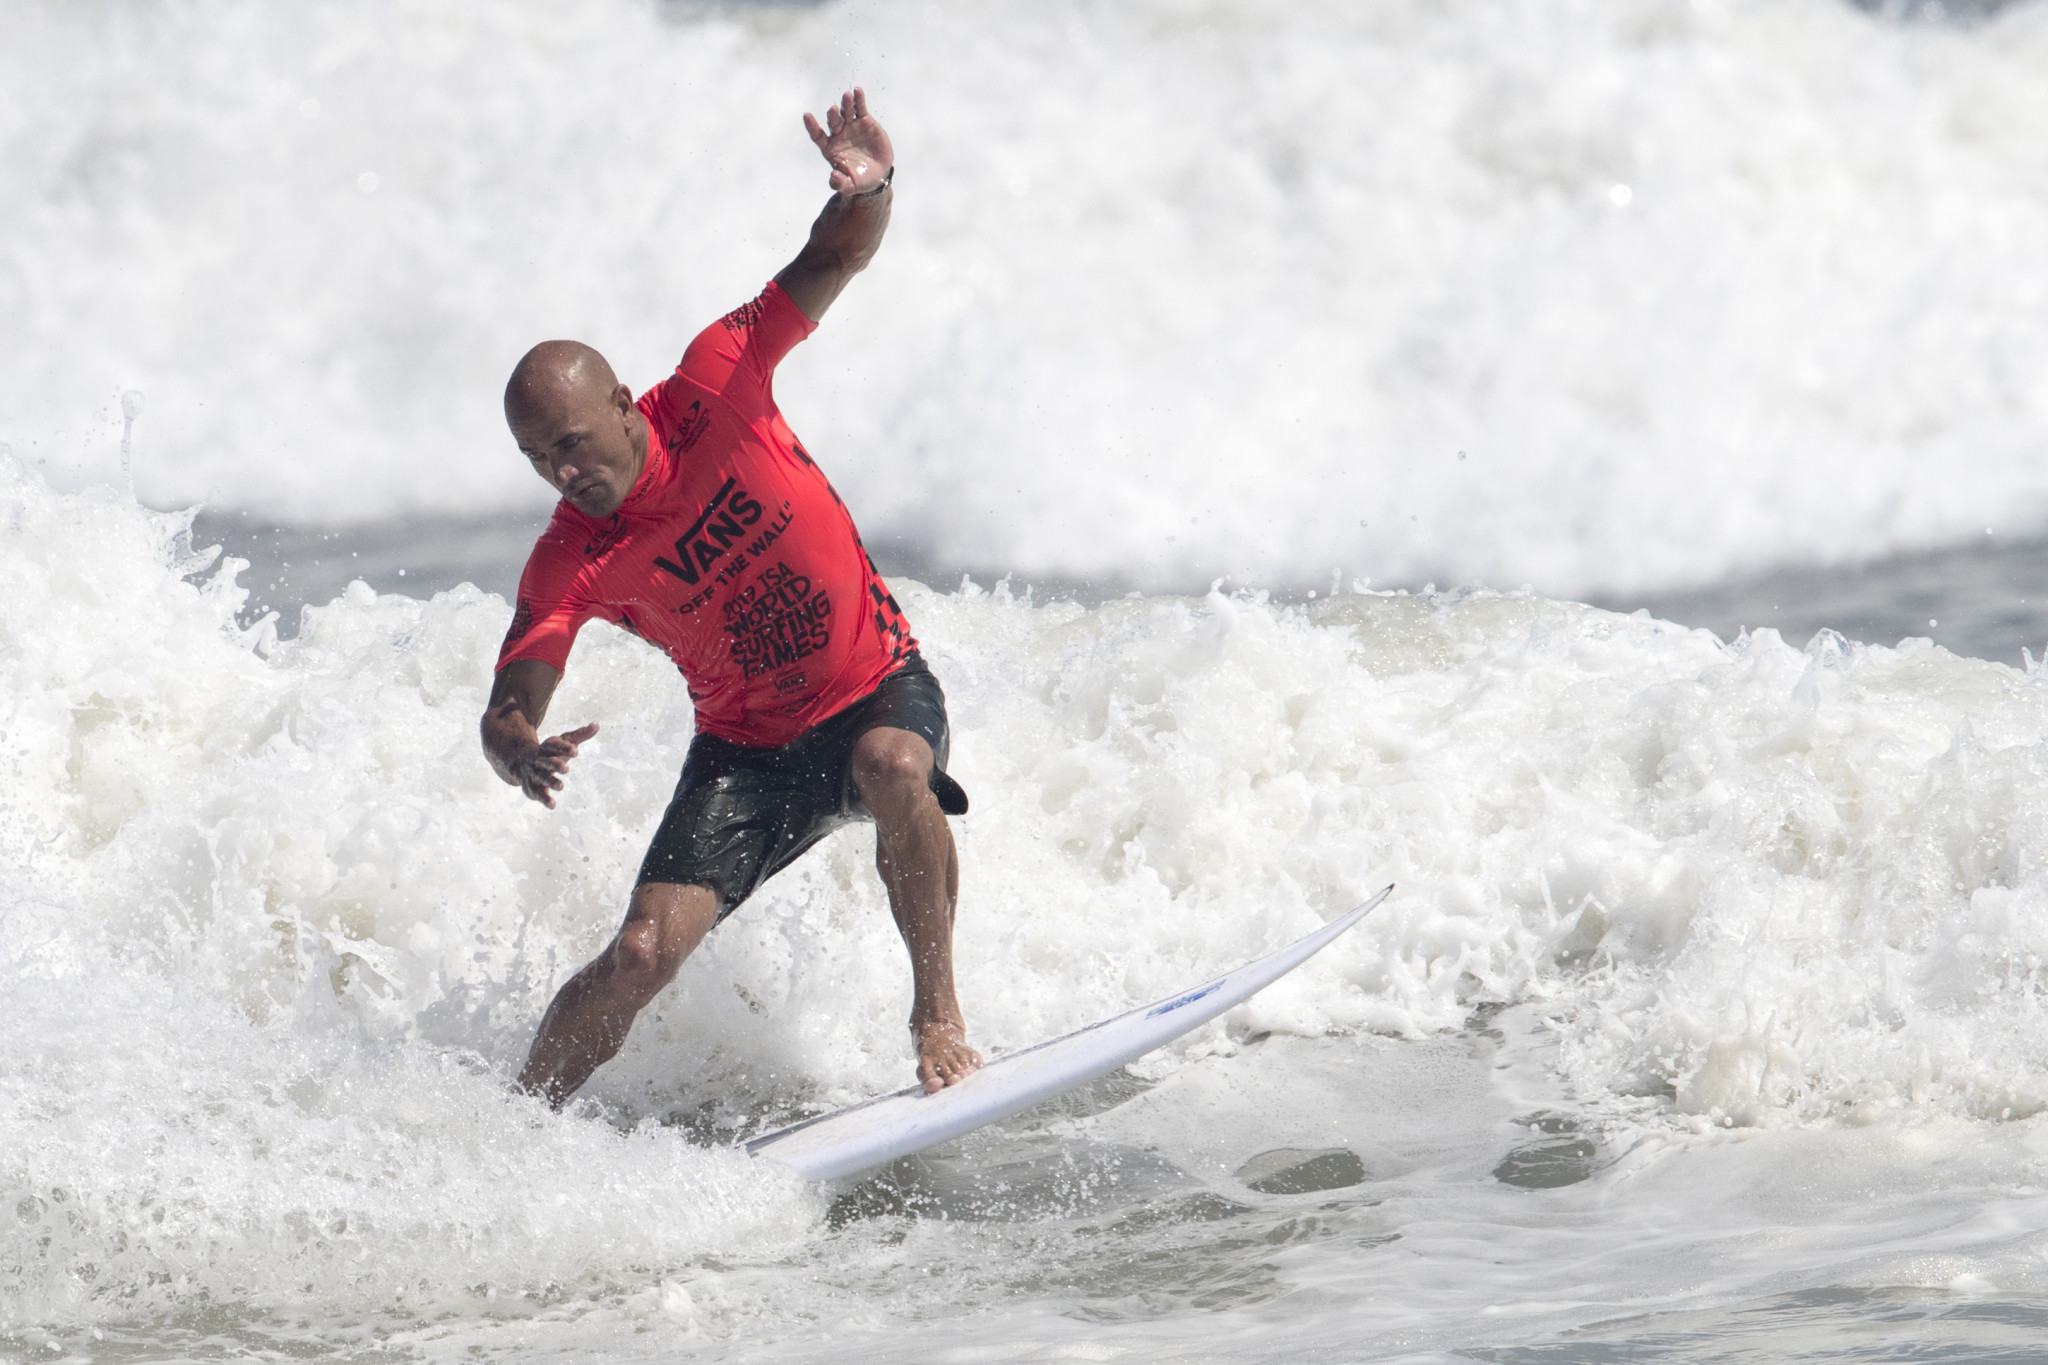 Kelly Slater had previously expressed doubts over whether surfing fit the bill as an Olympic sport ©Getty Images